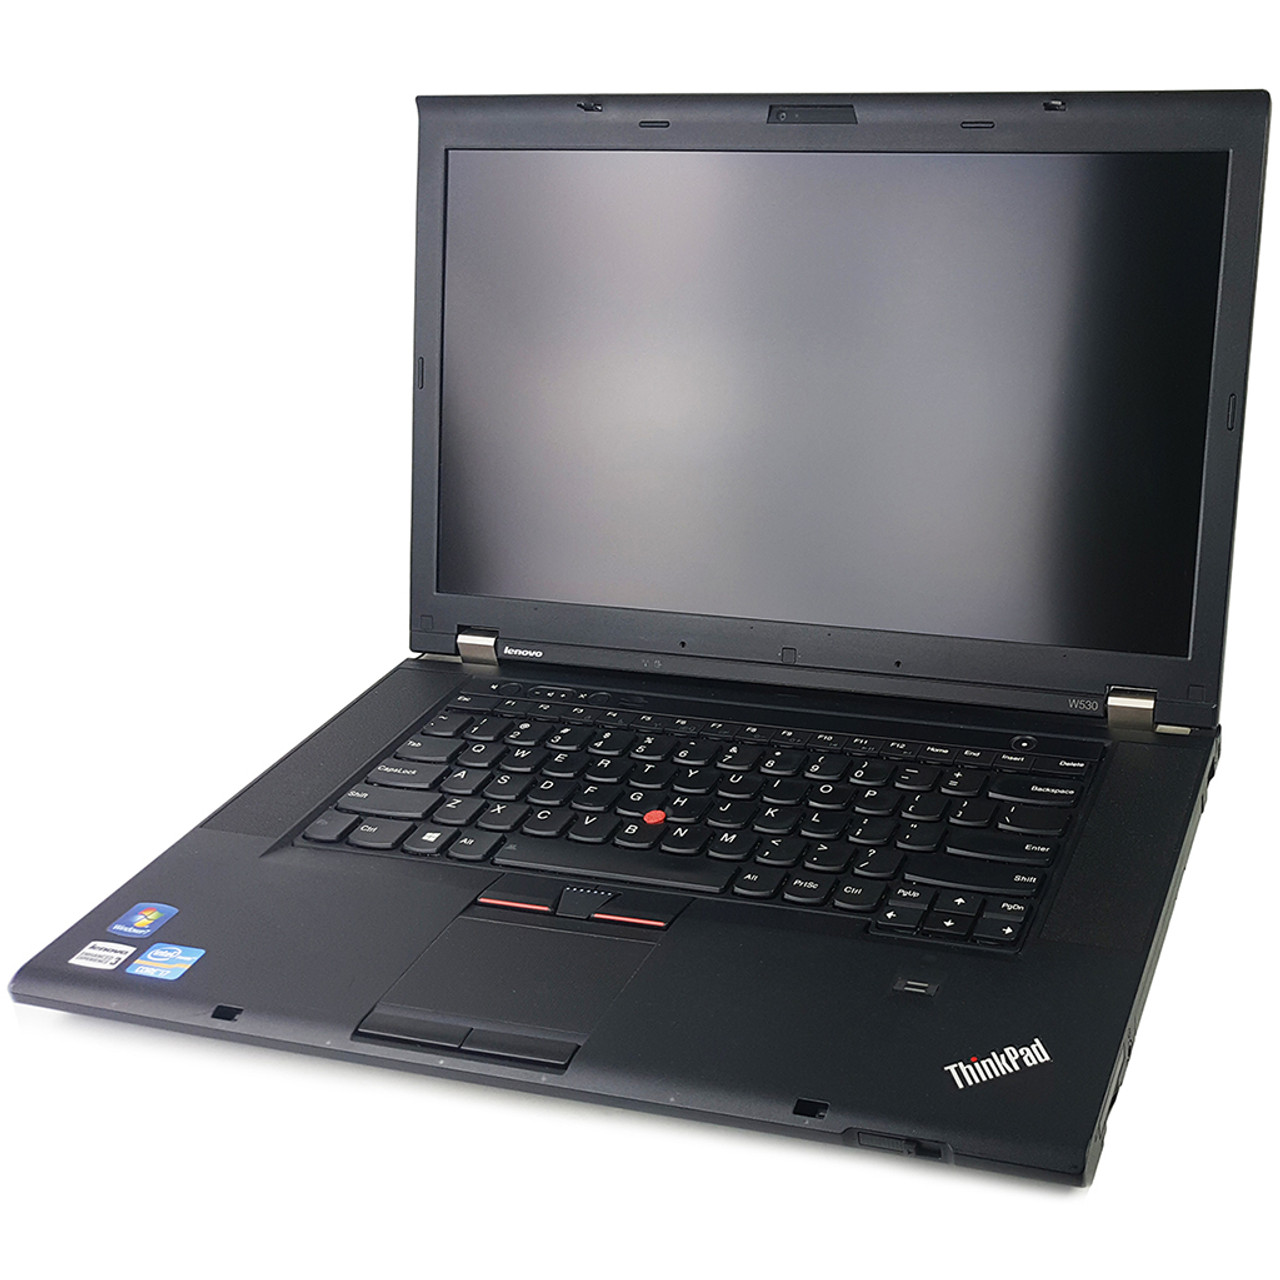 IBM Lenovo Thinkpad W530 Laptop Core i7 2.7GHz, 8GB Ram, 250GB SSD, DVD-RW, Windows 10 Pro 64 Notebook